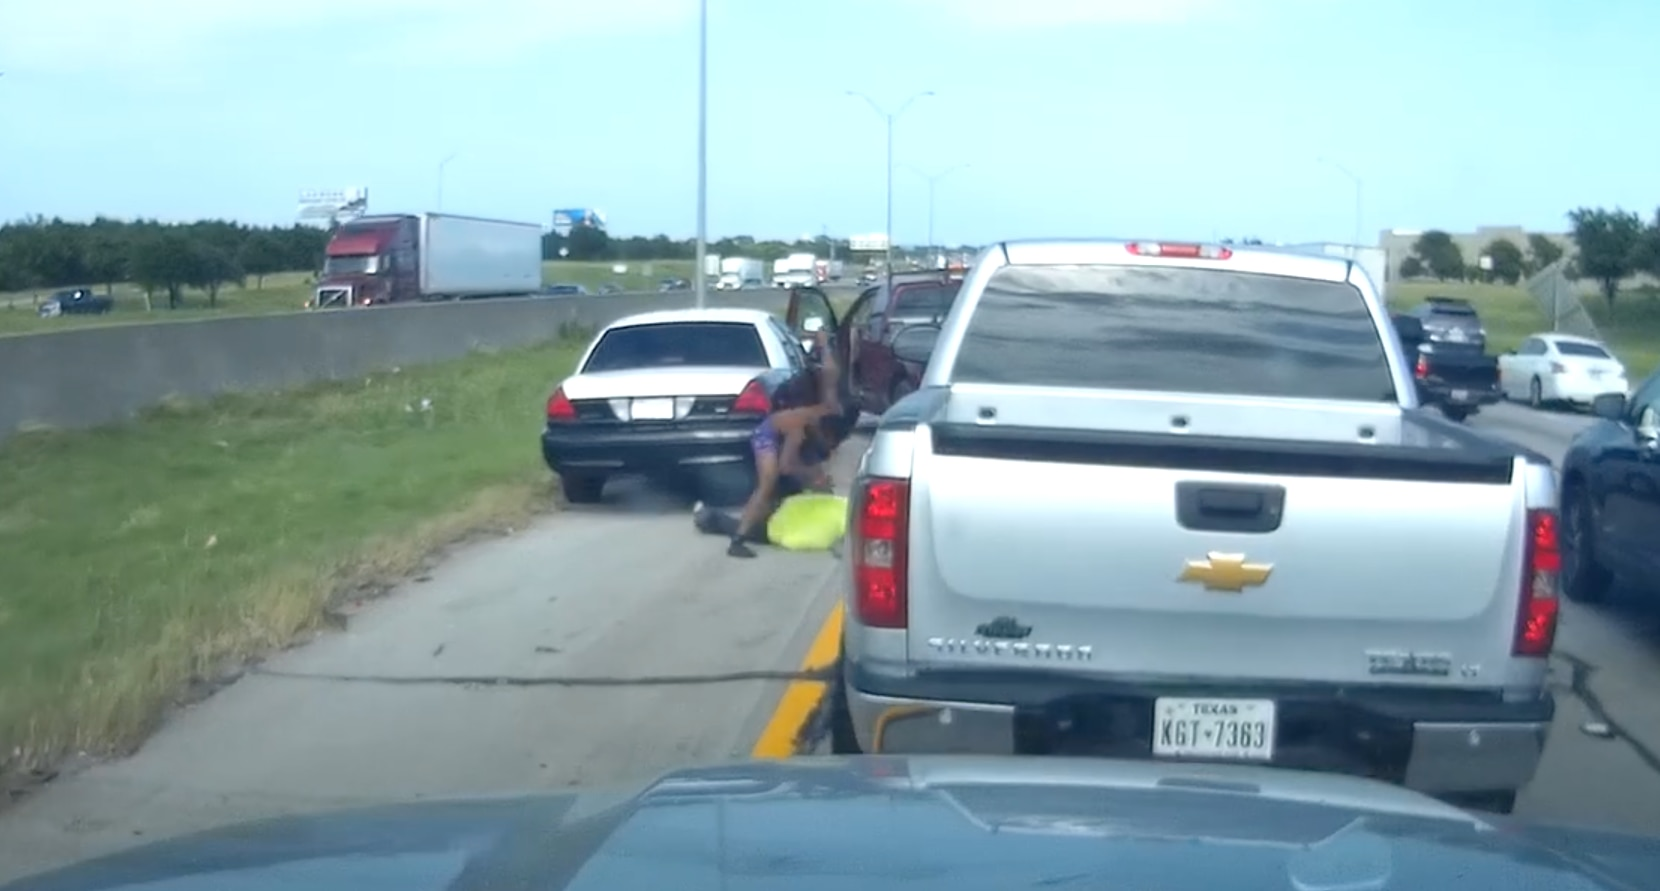 The incident took place along Interstate 20 in southern Dallas about 5:30 p.m. Wednesday.